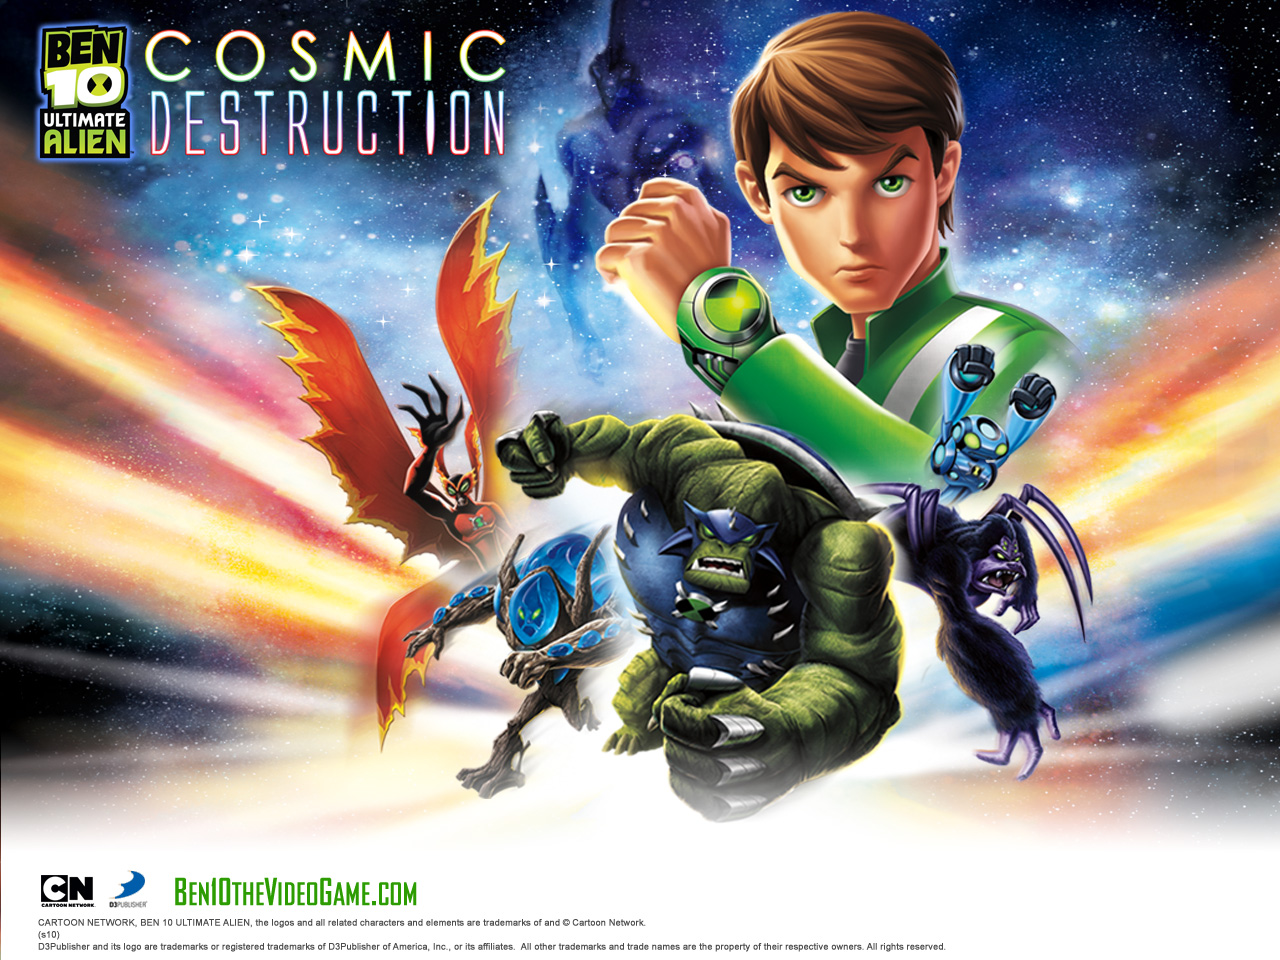 Ben 10 destuccion cosmica | Wiki Albedo | FANDOM powered by Wikia